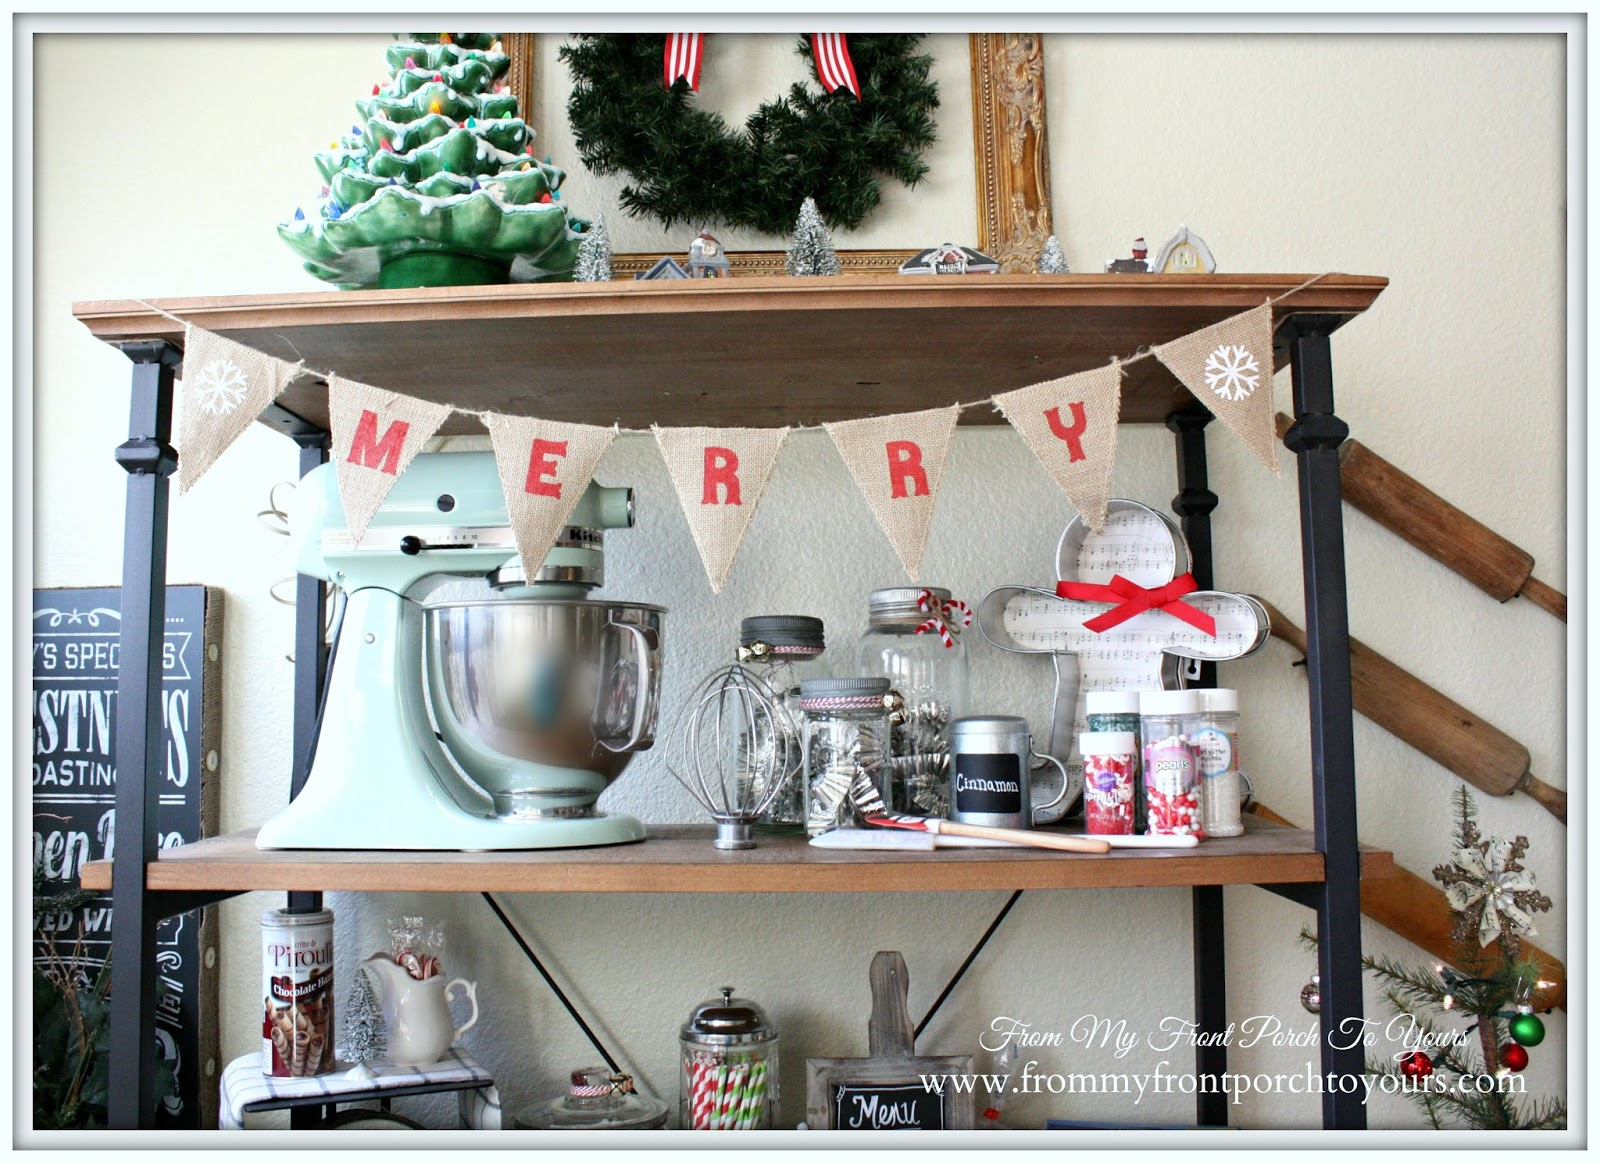 Pistachio Kitchen Aid Mixer-French Farmhouse Christmas Kitchen- From My Front Porch To Yours